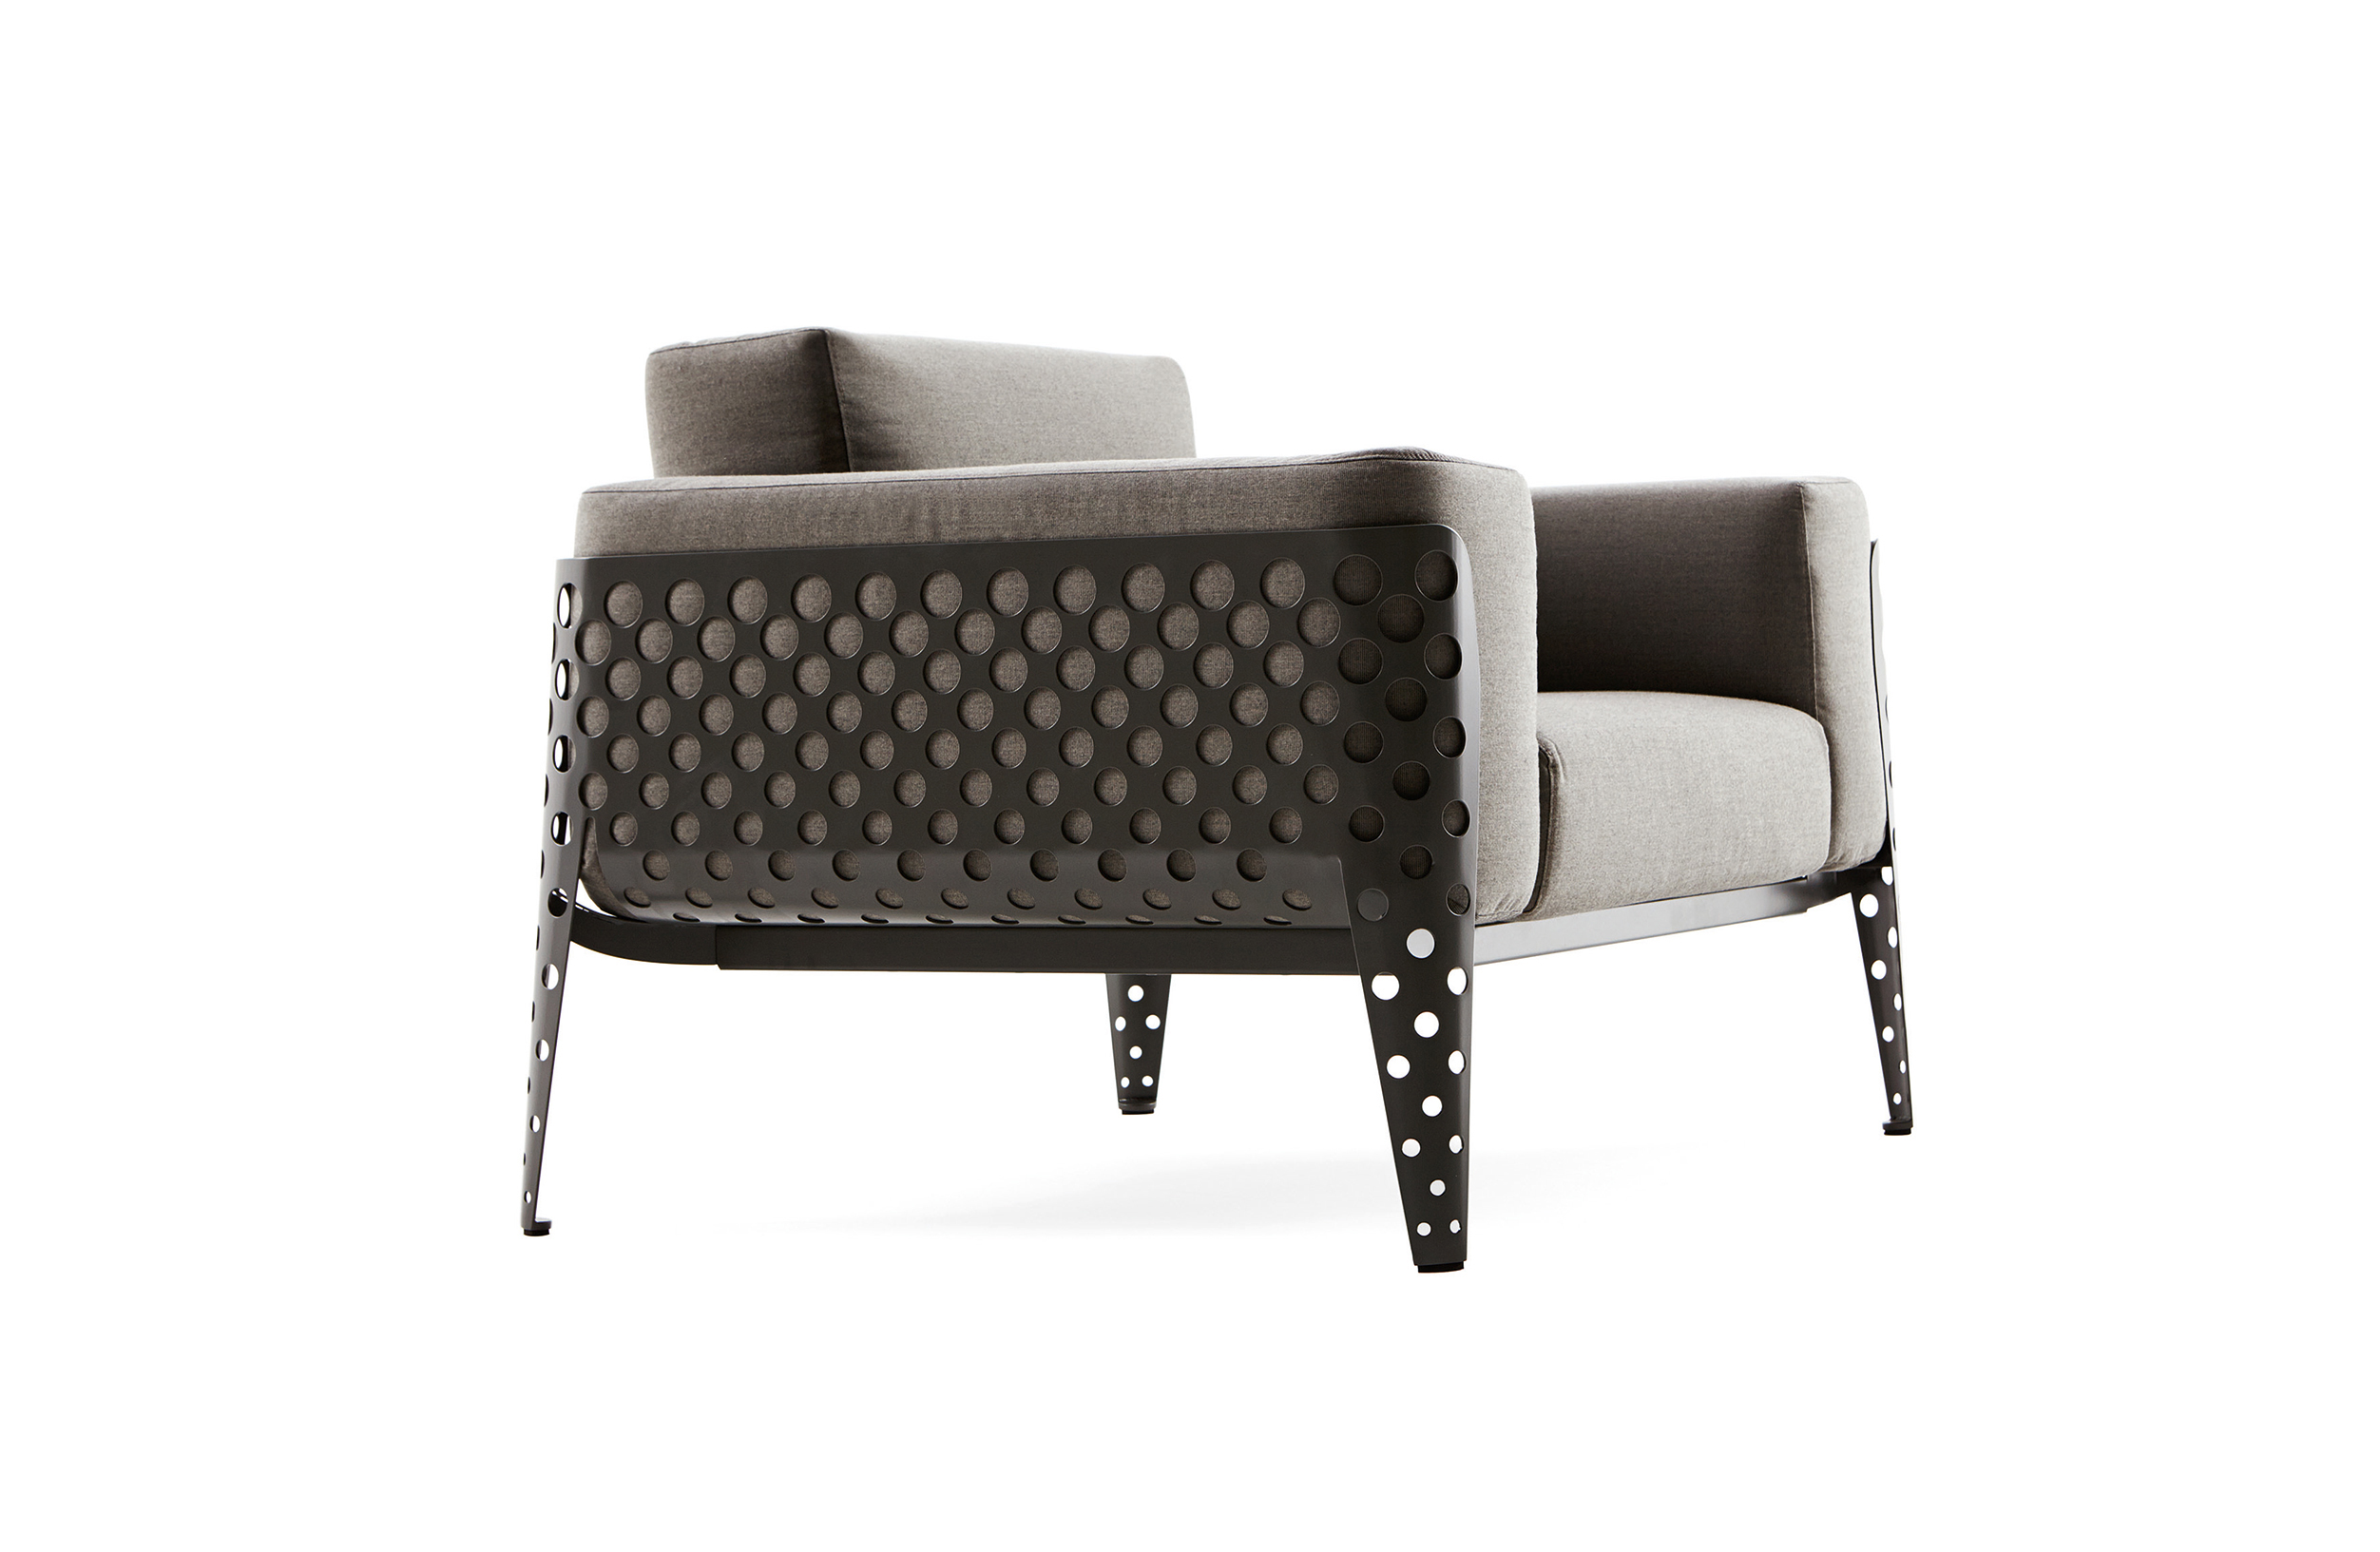 varaschin-pois-outdoor_armchair-01